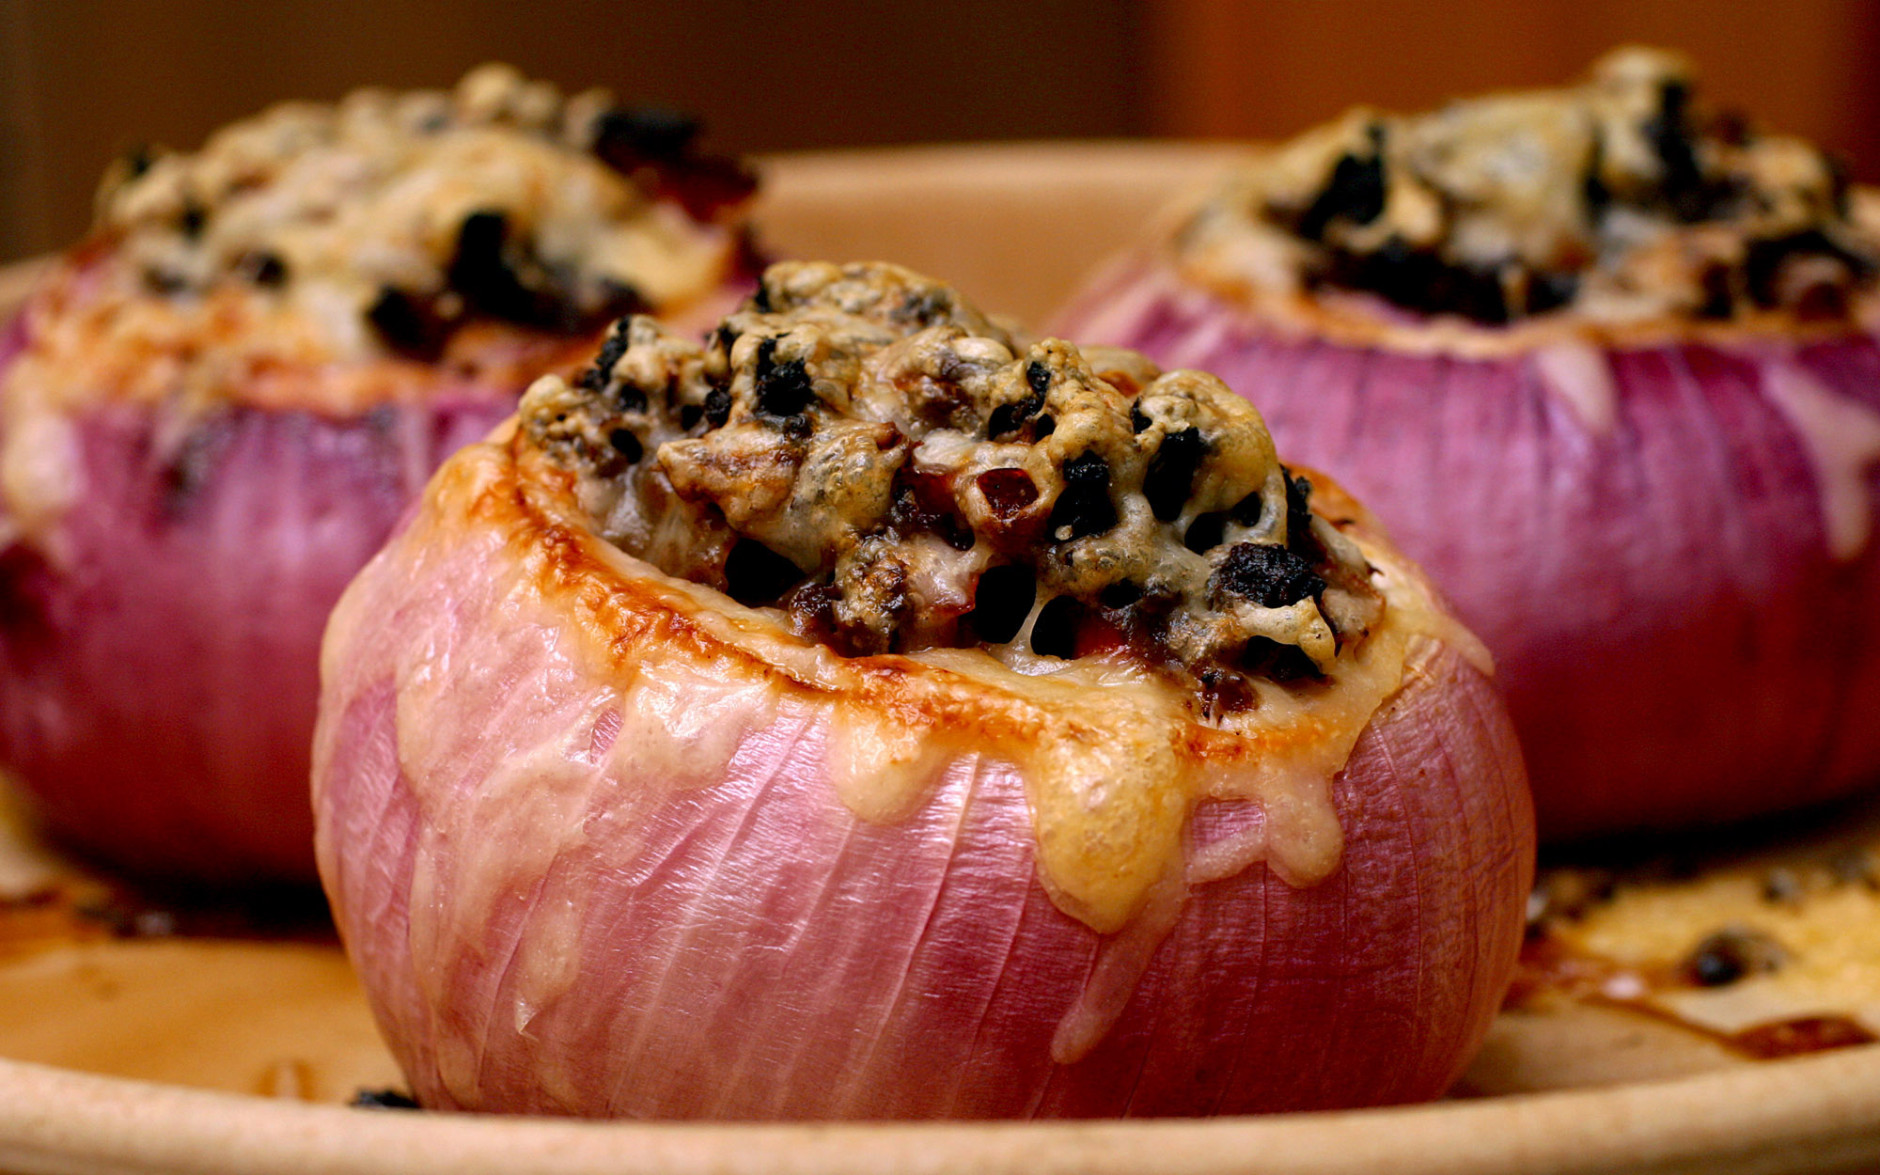 ** FOR USE WITH AP WEEKLY FEATURES **    Red Onion Chili is baked in hollowed-out onions. The sweetness of the onion complements the bold flavor of the vegetarian chili topped with cheese. (AP Photo/Larry Crowe)